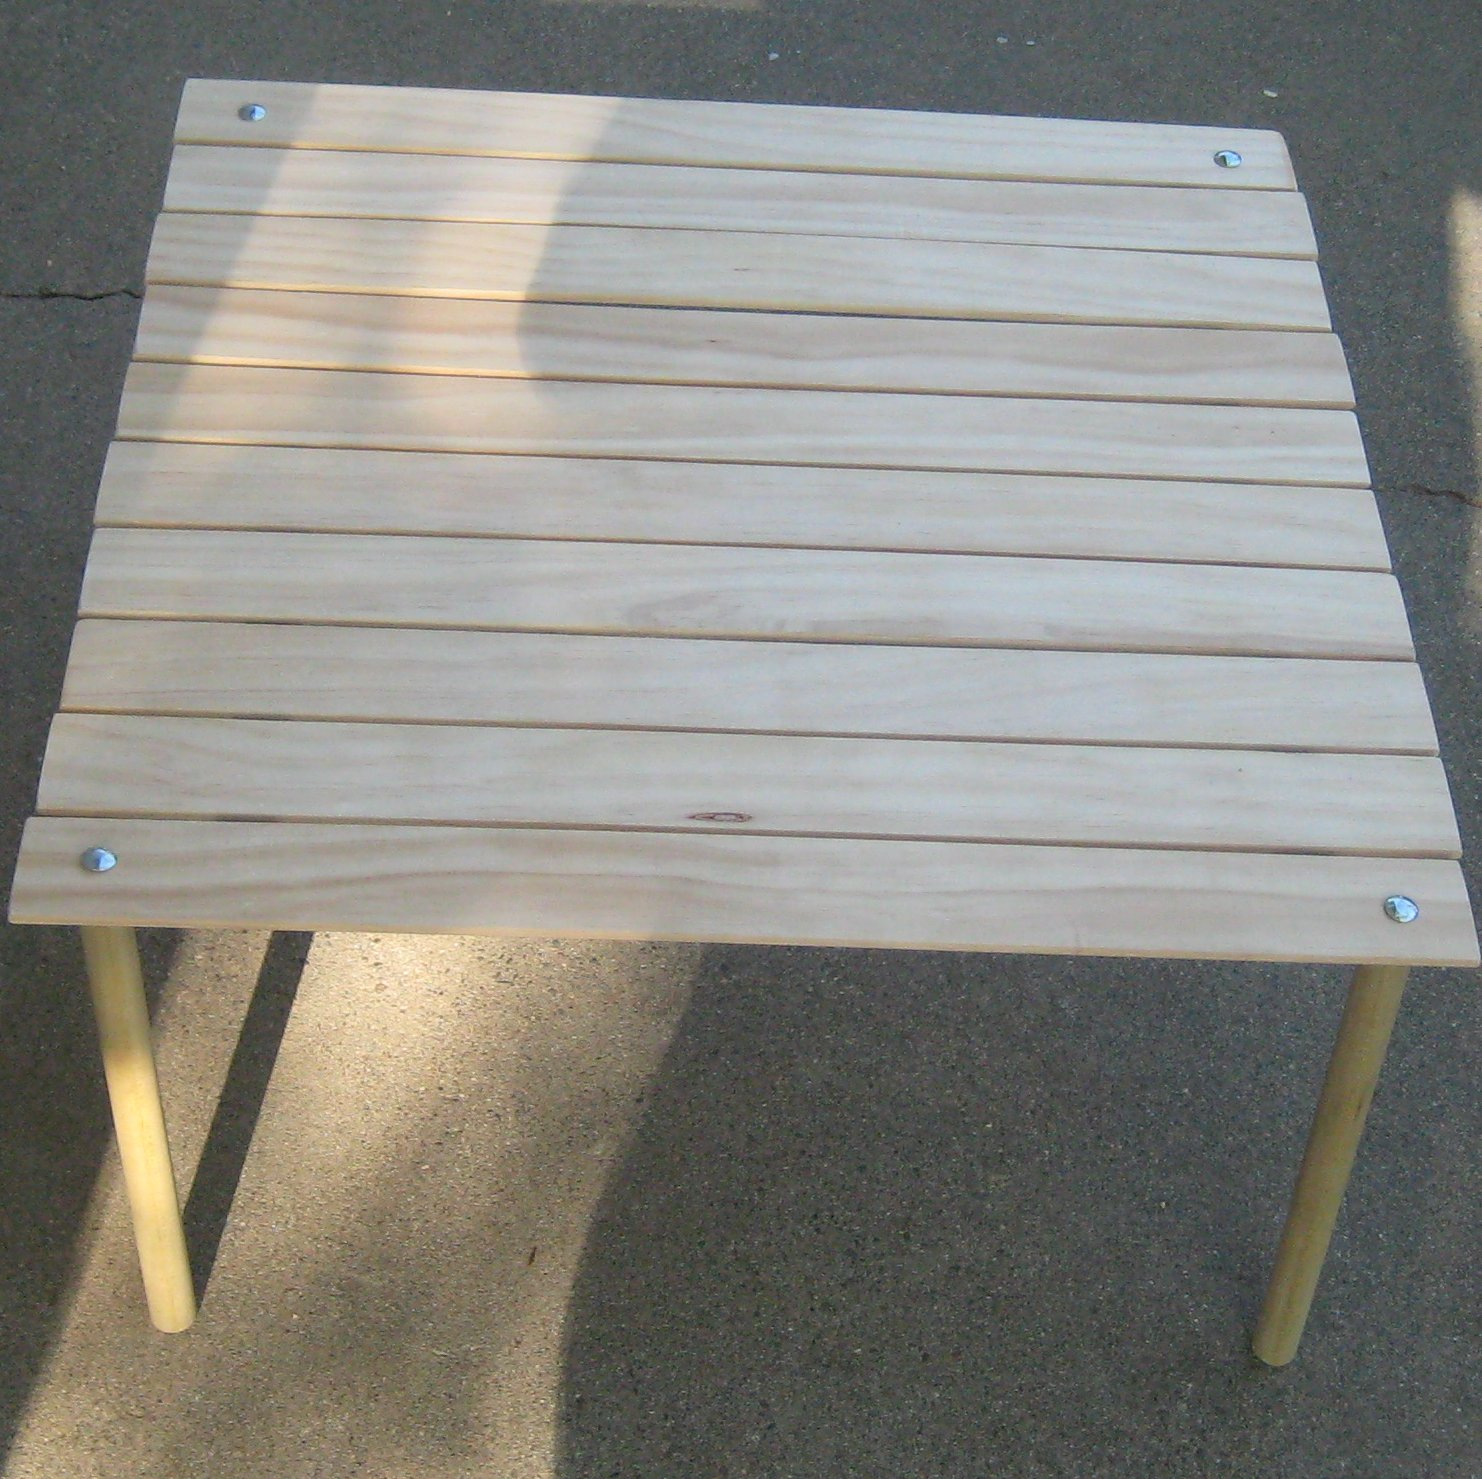 Make A Collapsable Table For Concerts In The Park 13 Steps With Pictures Instructables